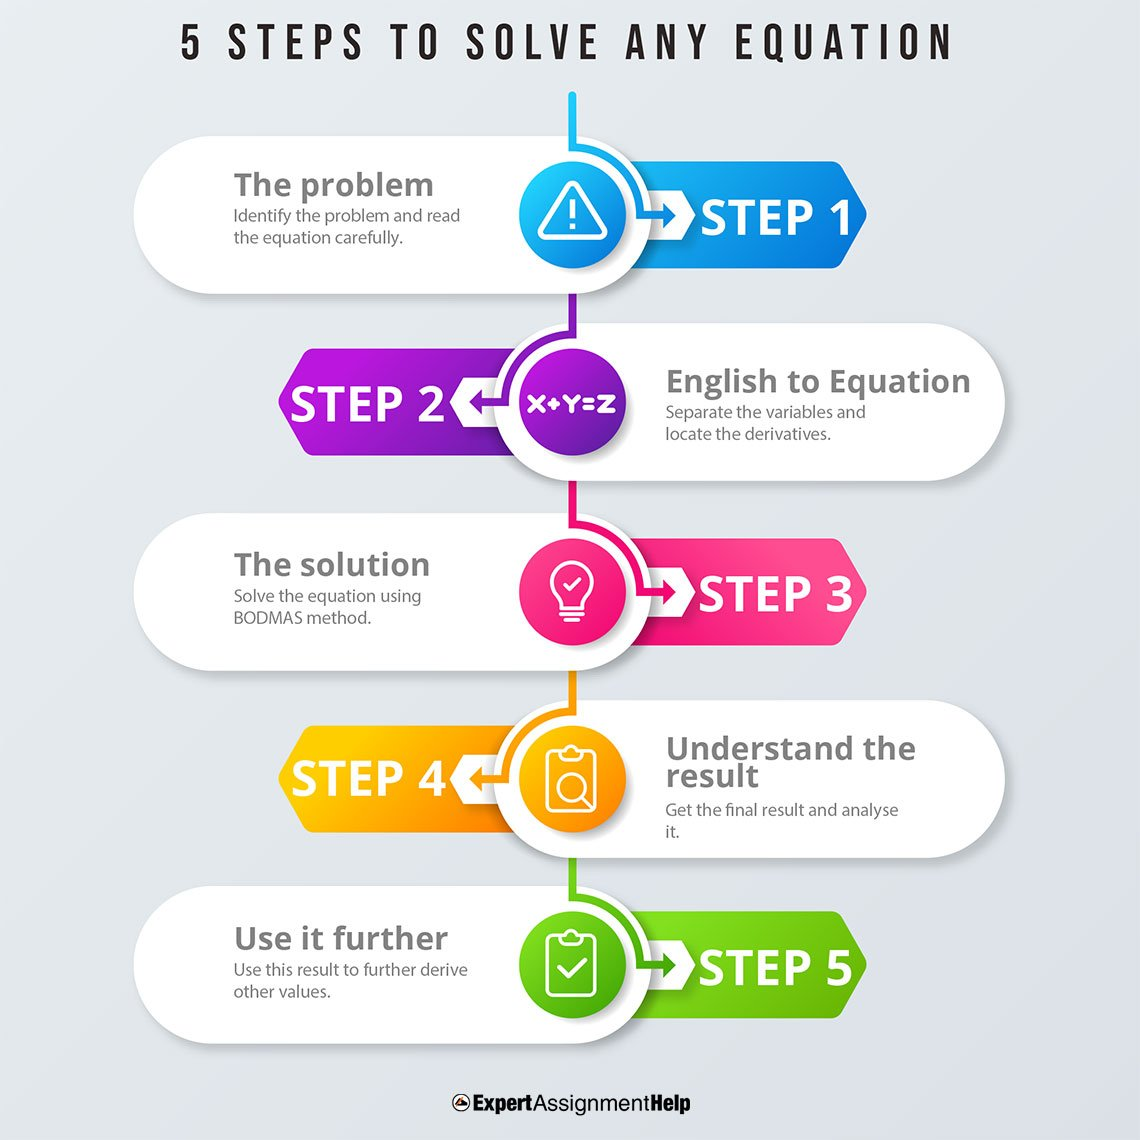 5 steps to solve any equation